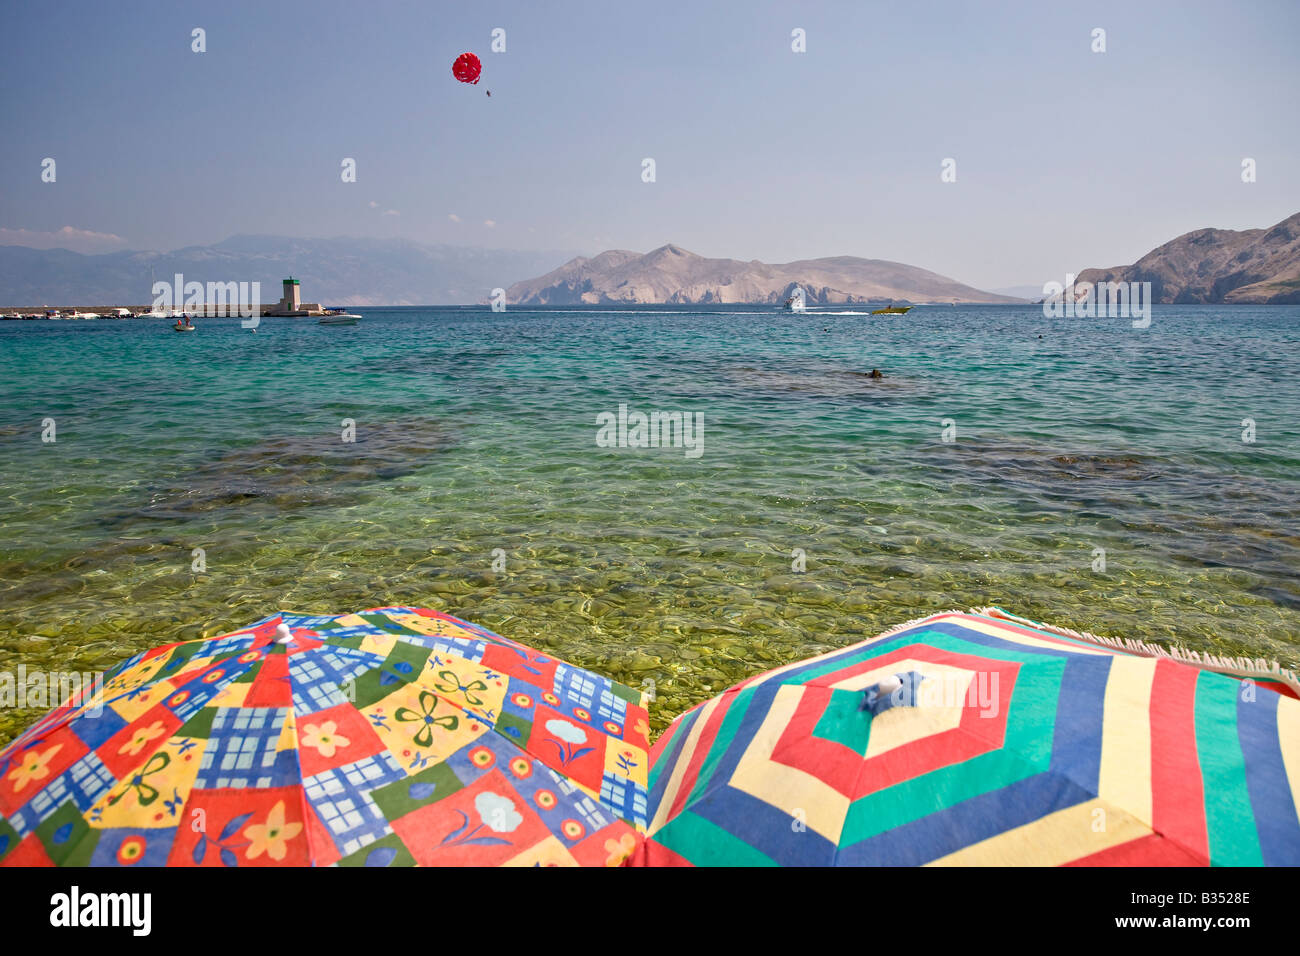 Two sunshades in front of the Baska bay at the isle of Krk in Croatia - Stock Image